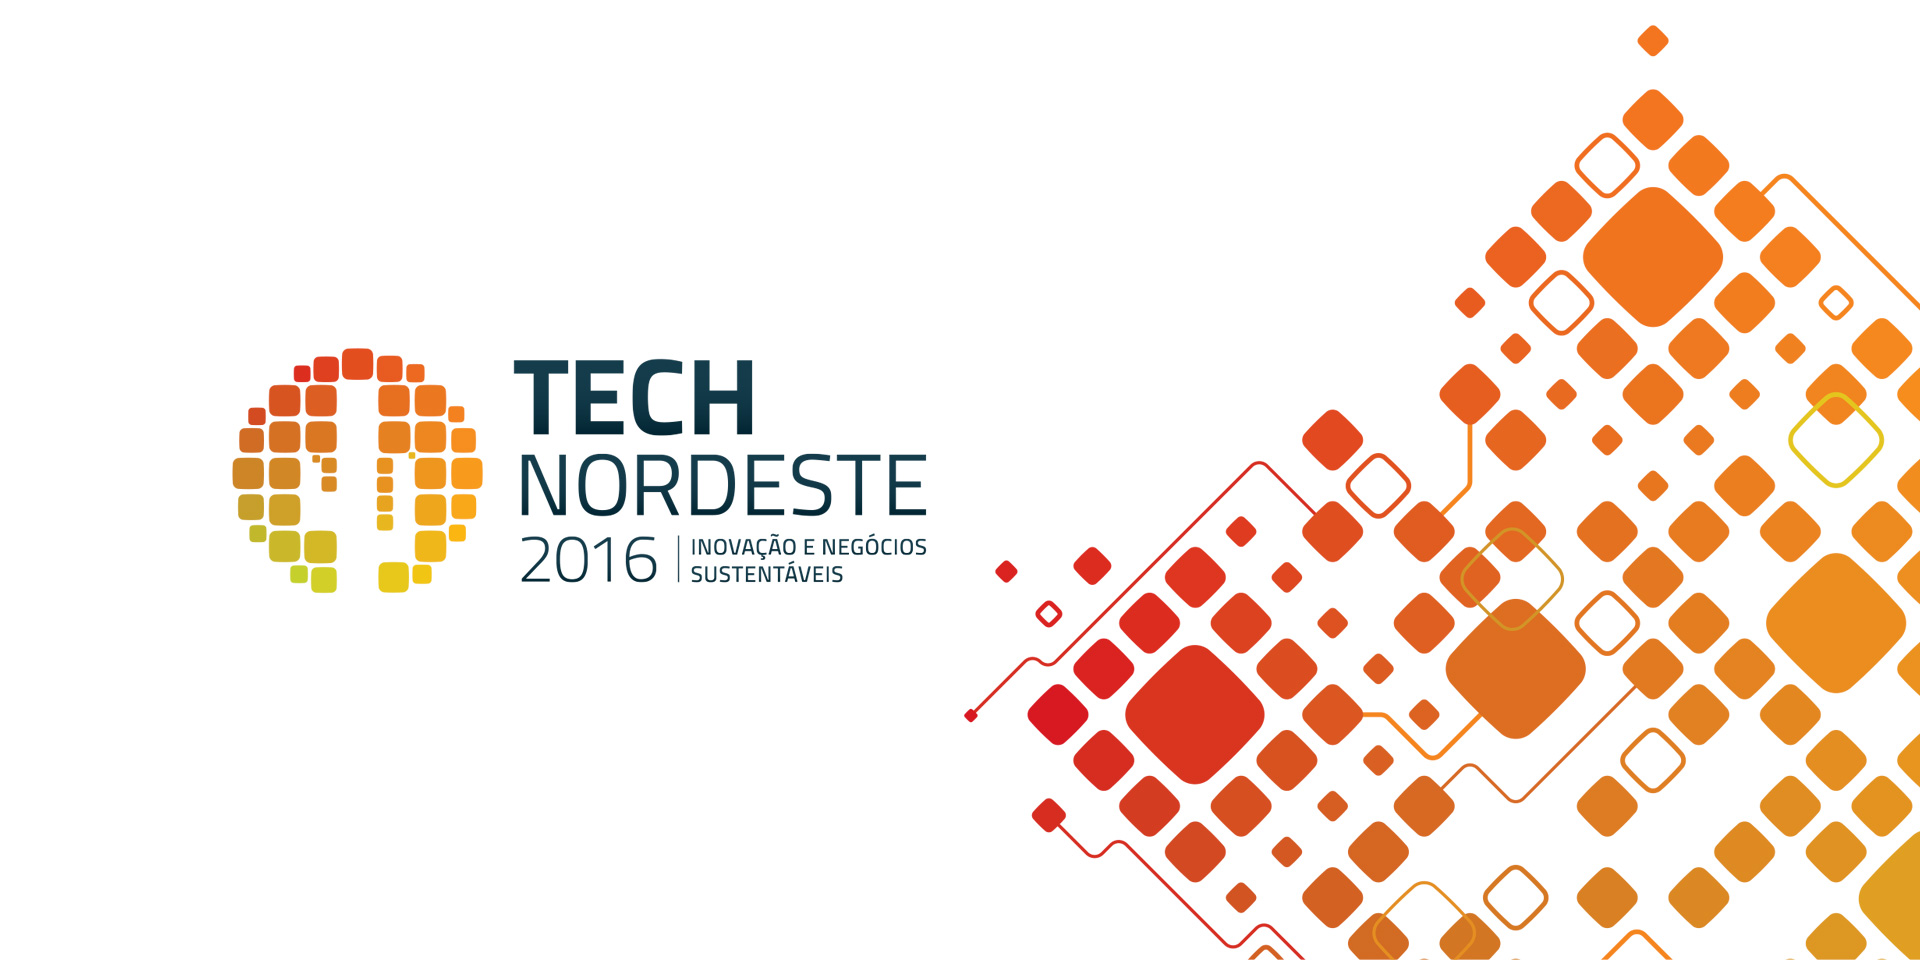 technordeste-logo-pattern